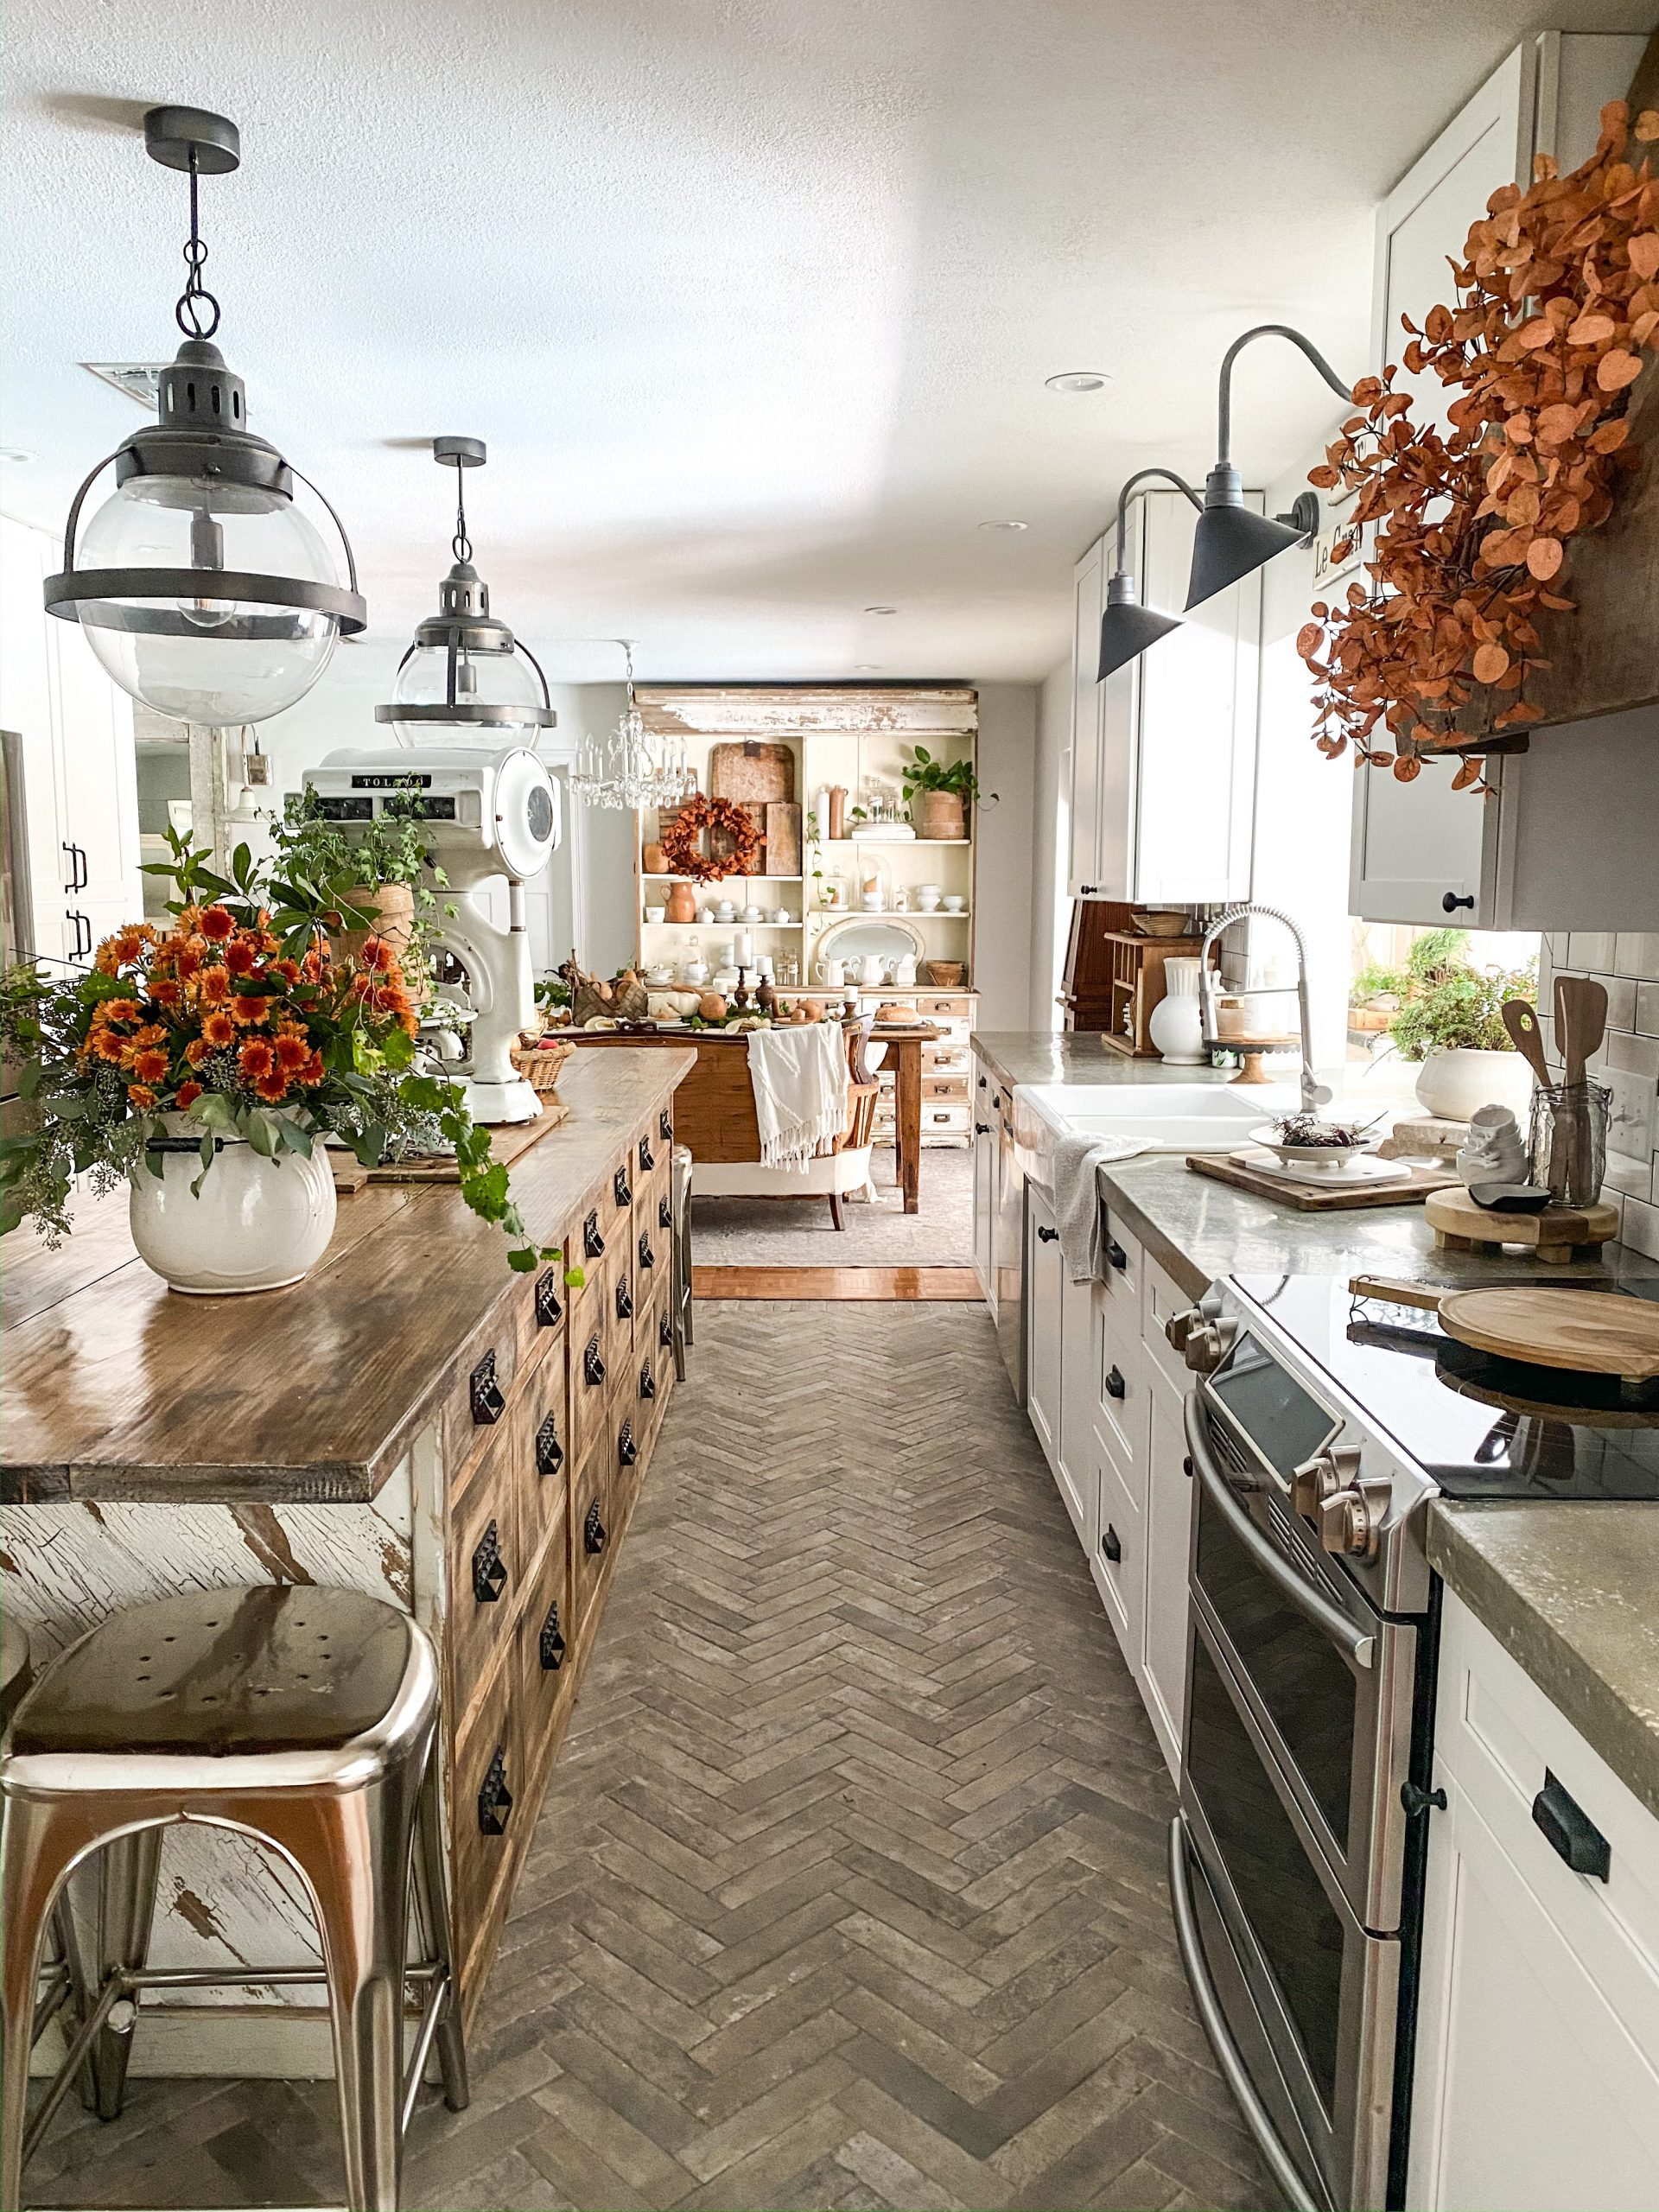 Simple Fall Decor Tour to See Our Grateful Home